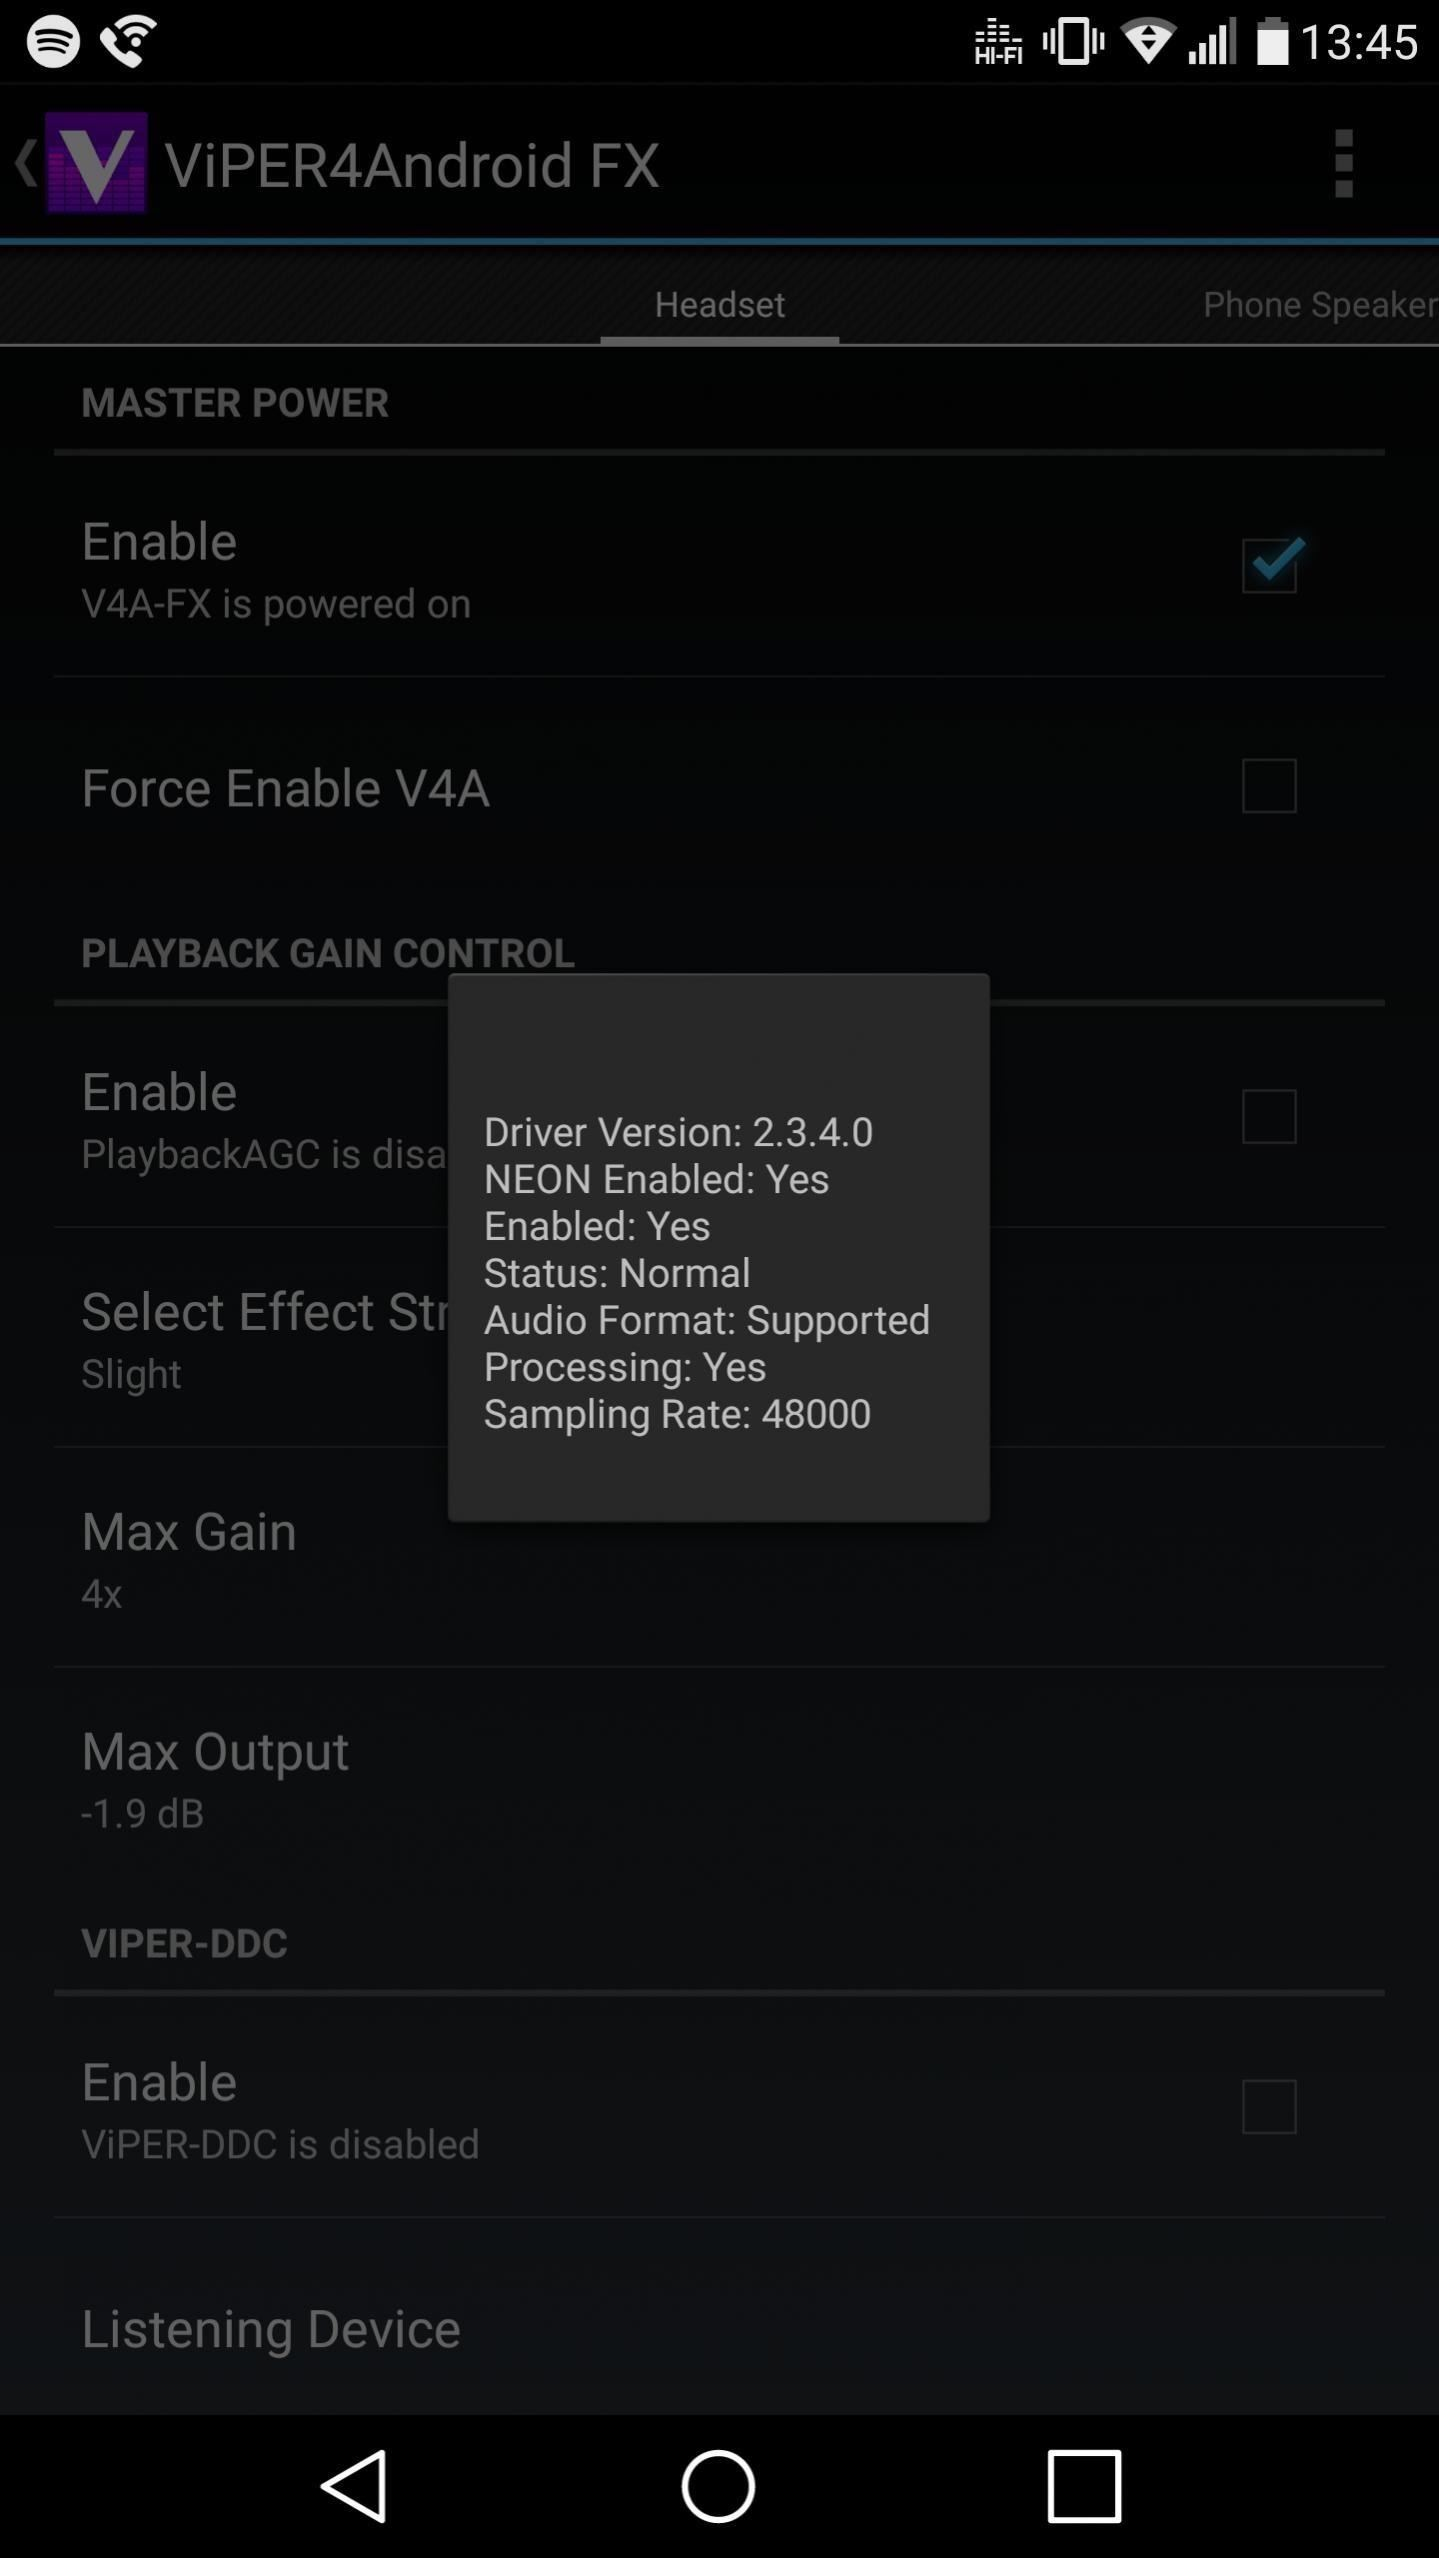 Install ViPER4Android on Your LG V20 for Better Sound Quality